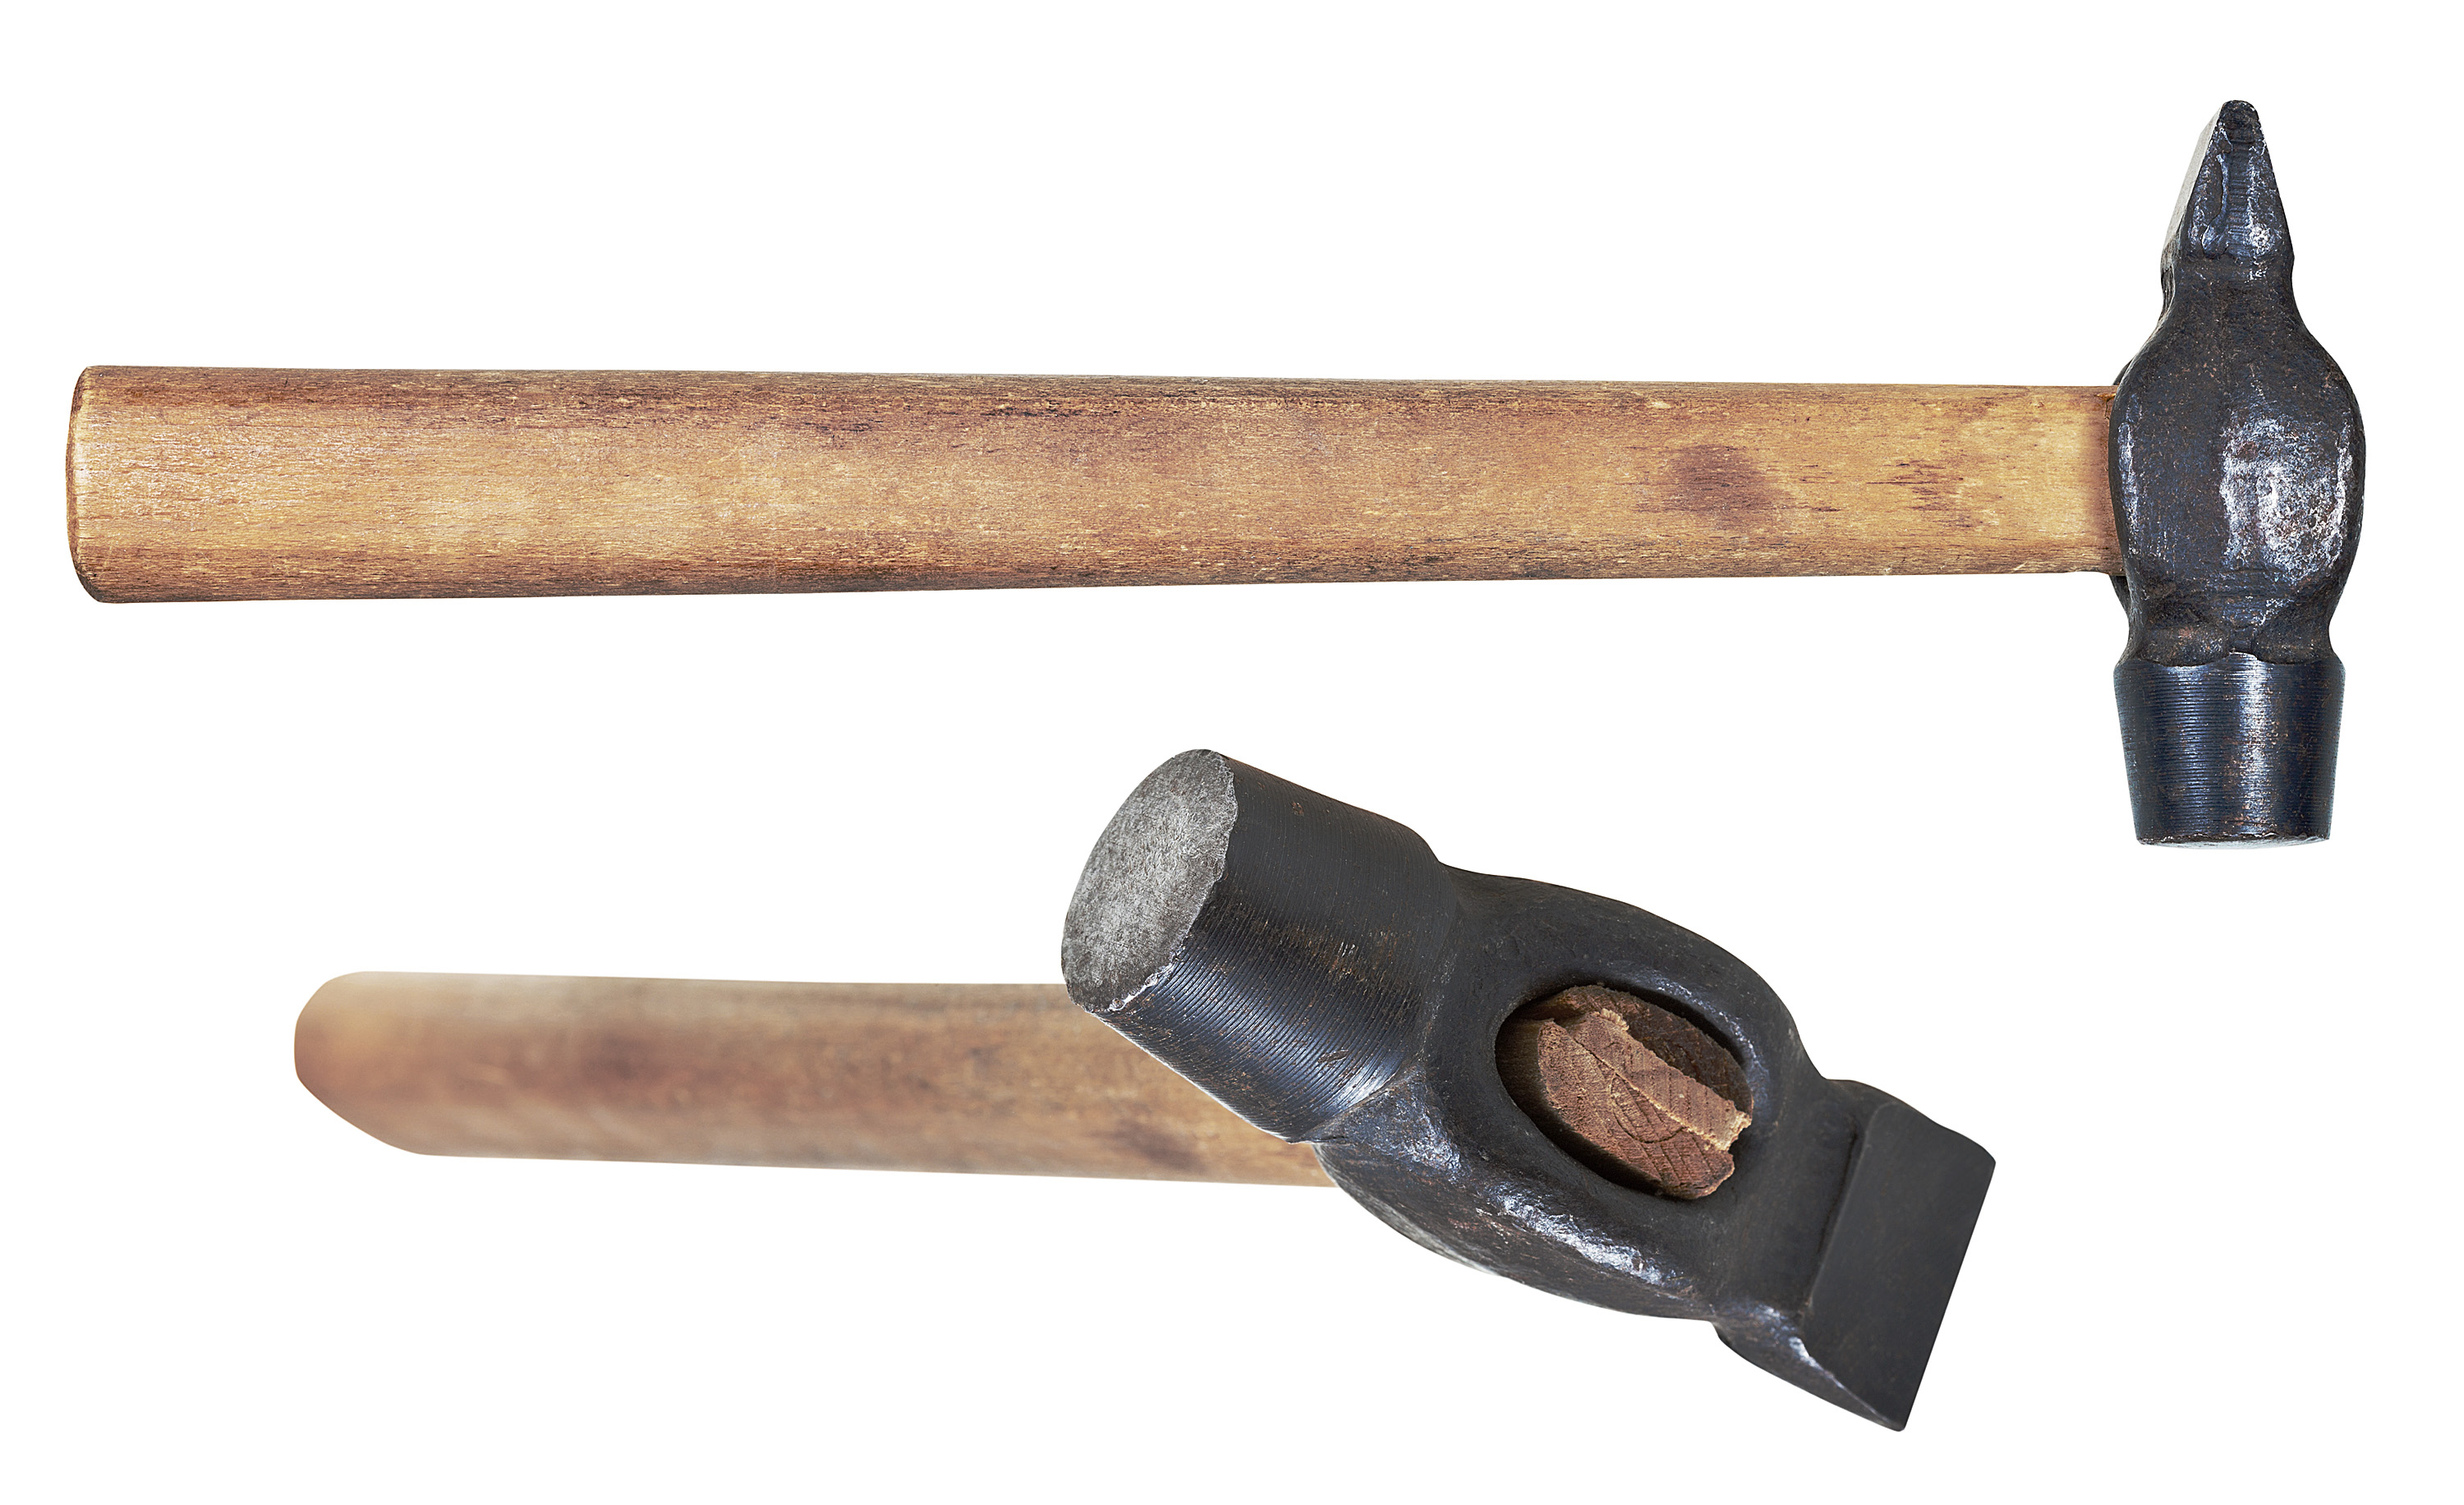 Figure 2. Two views of a cross-peen hammer.